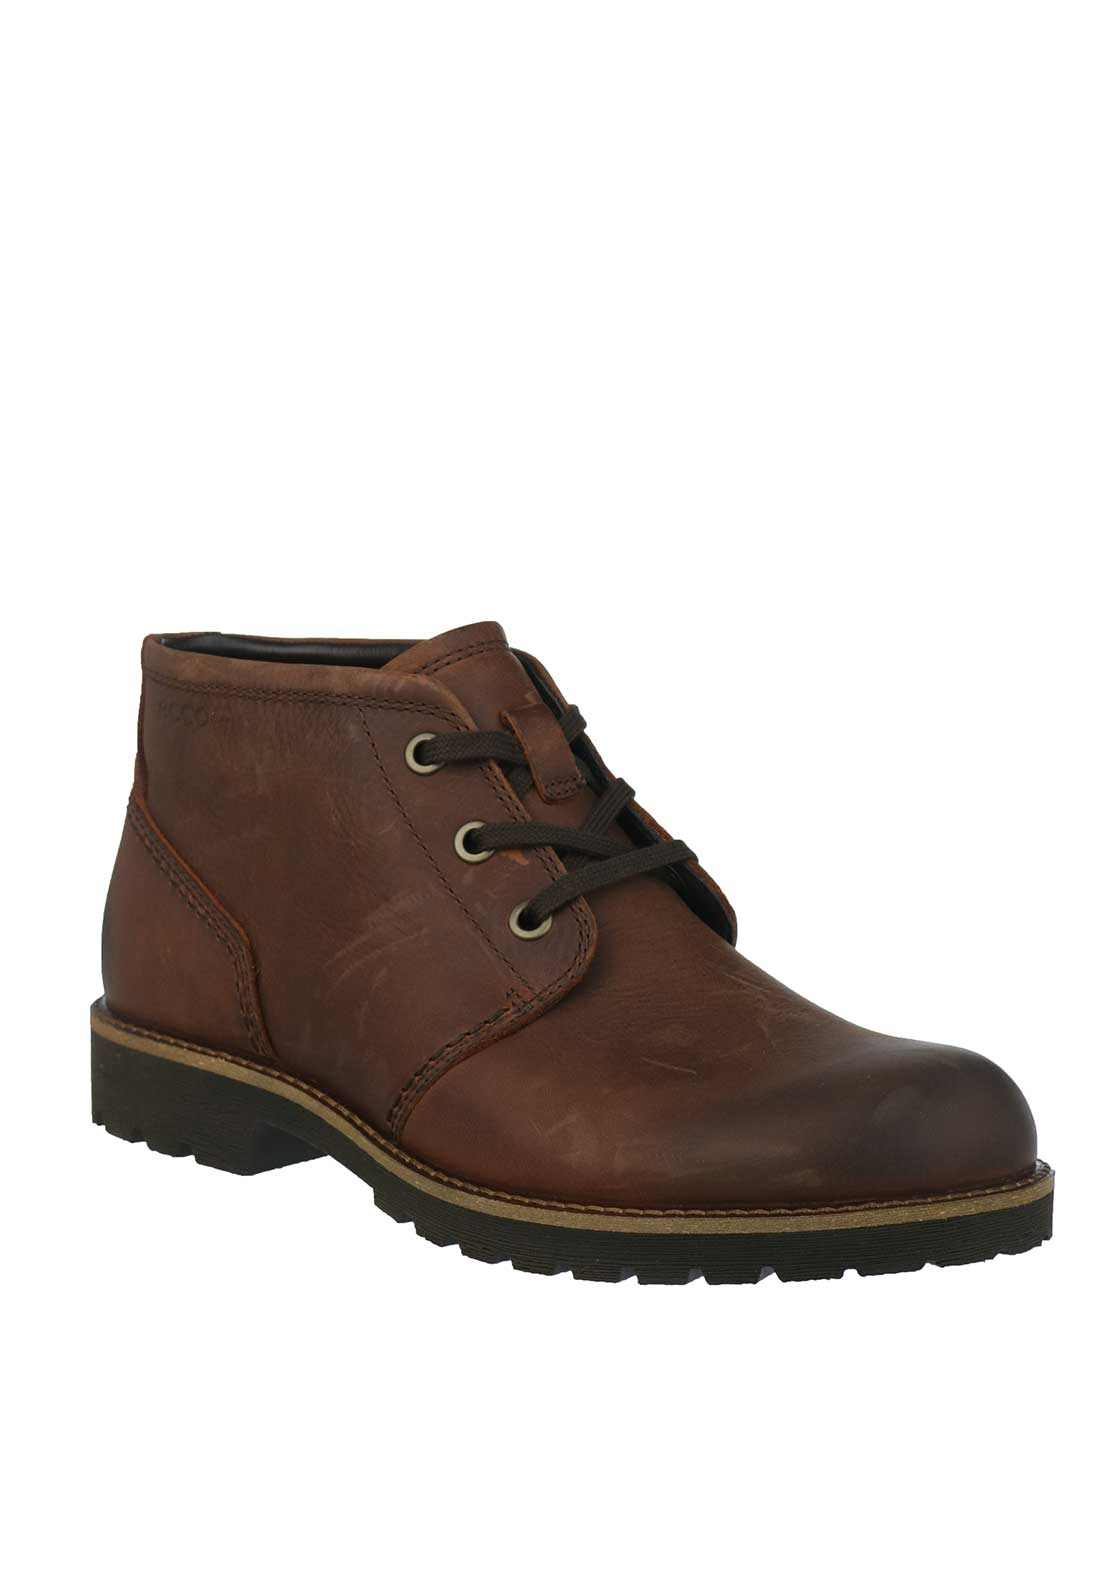 Ecco Mens Jamestown Leather Boots, Brown